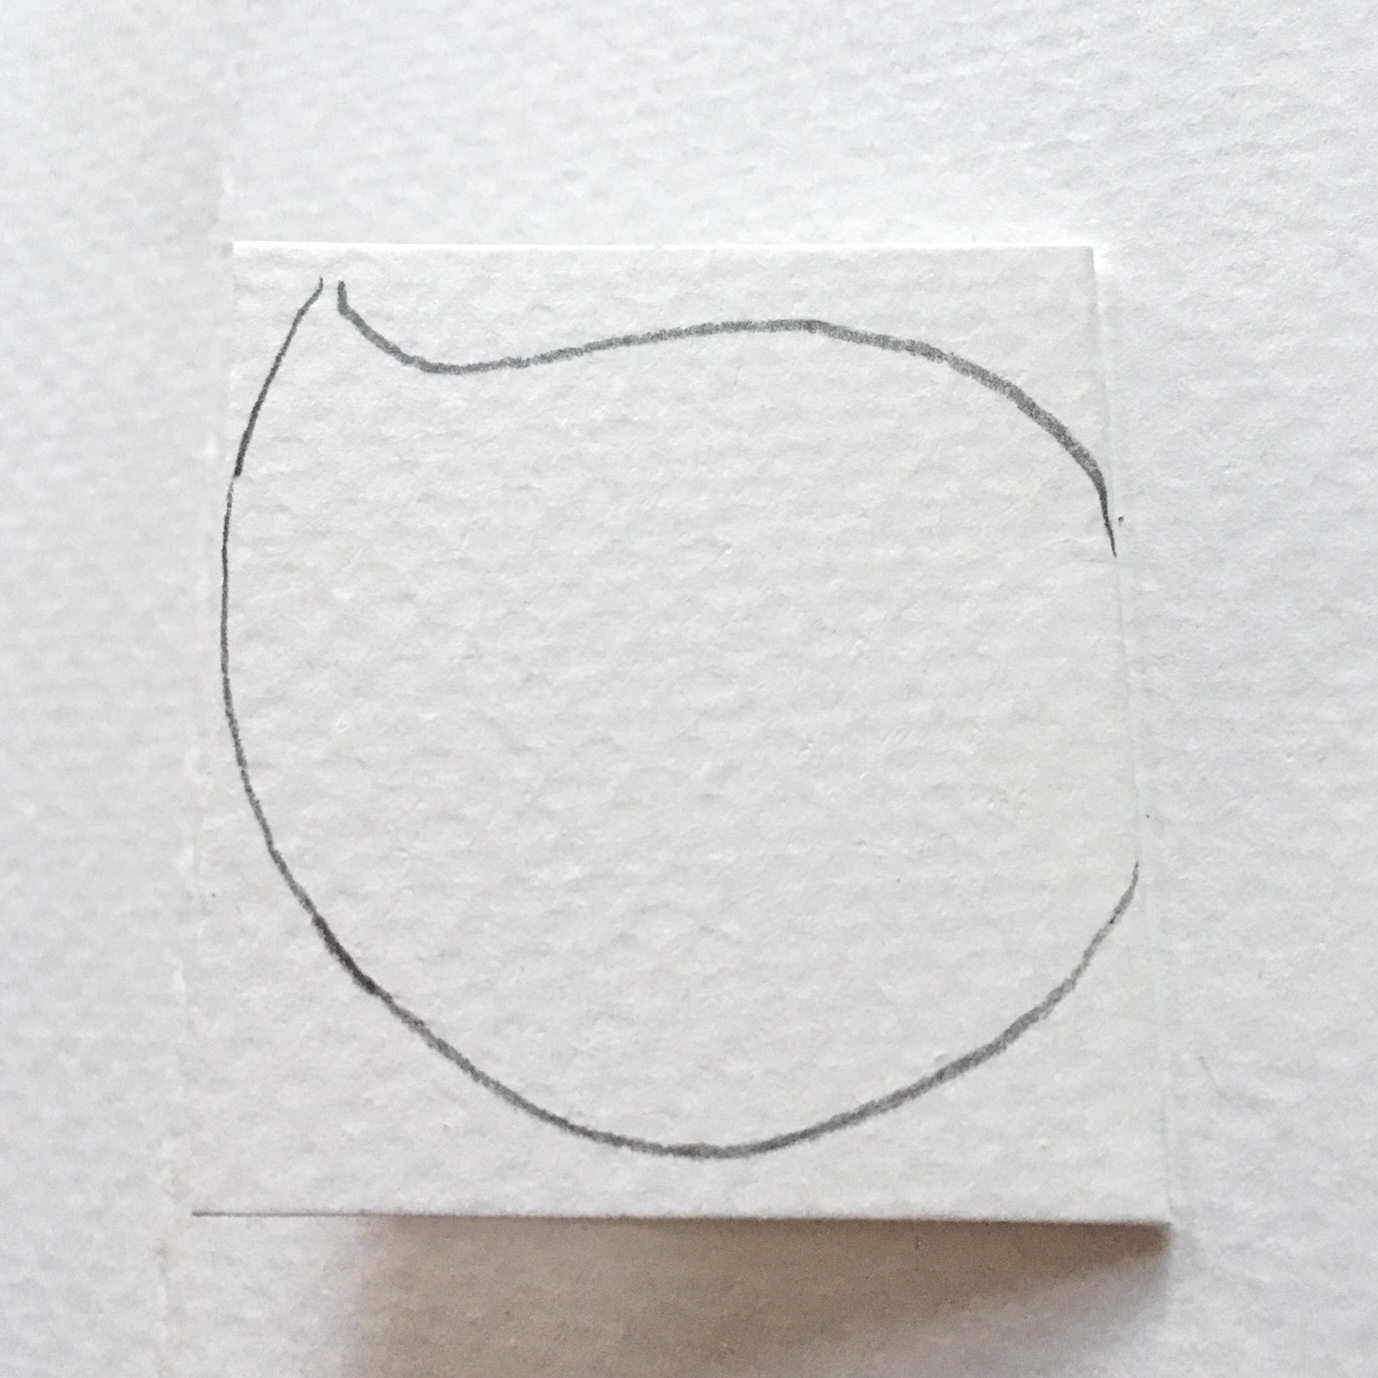 leaf shape drawn on the white paper rectangle